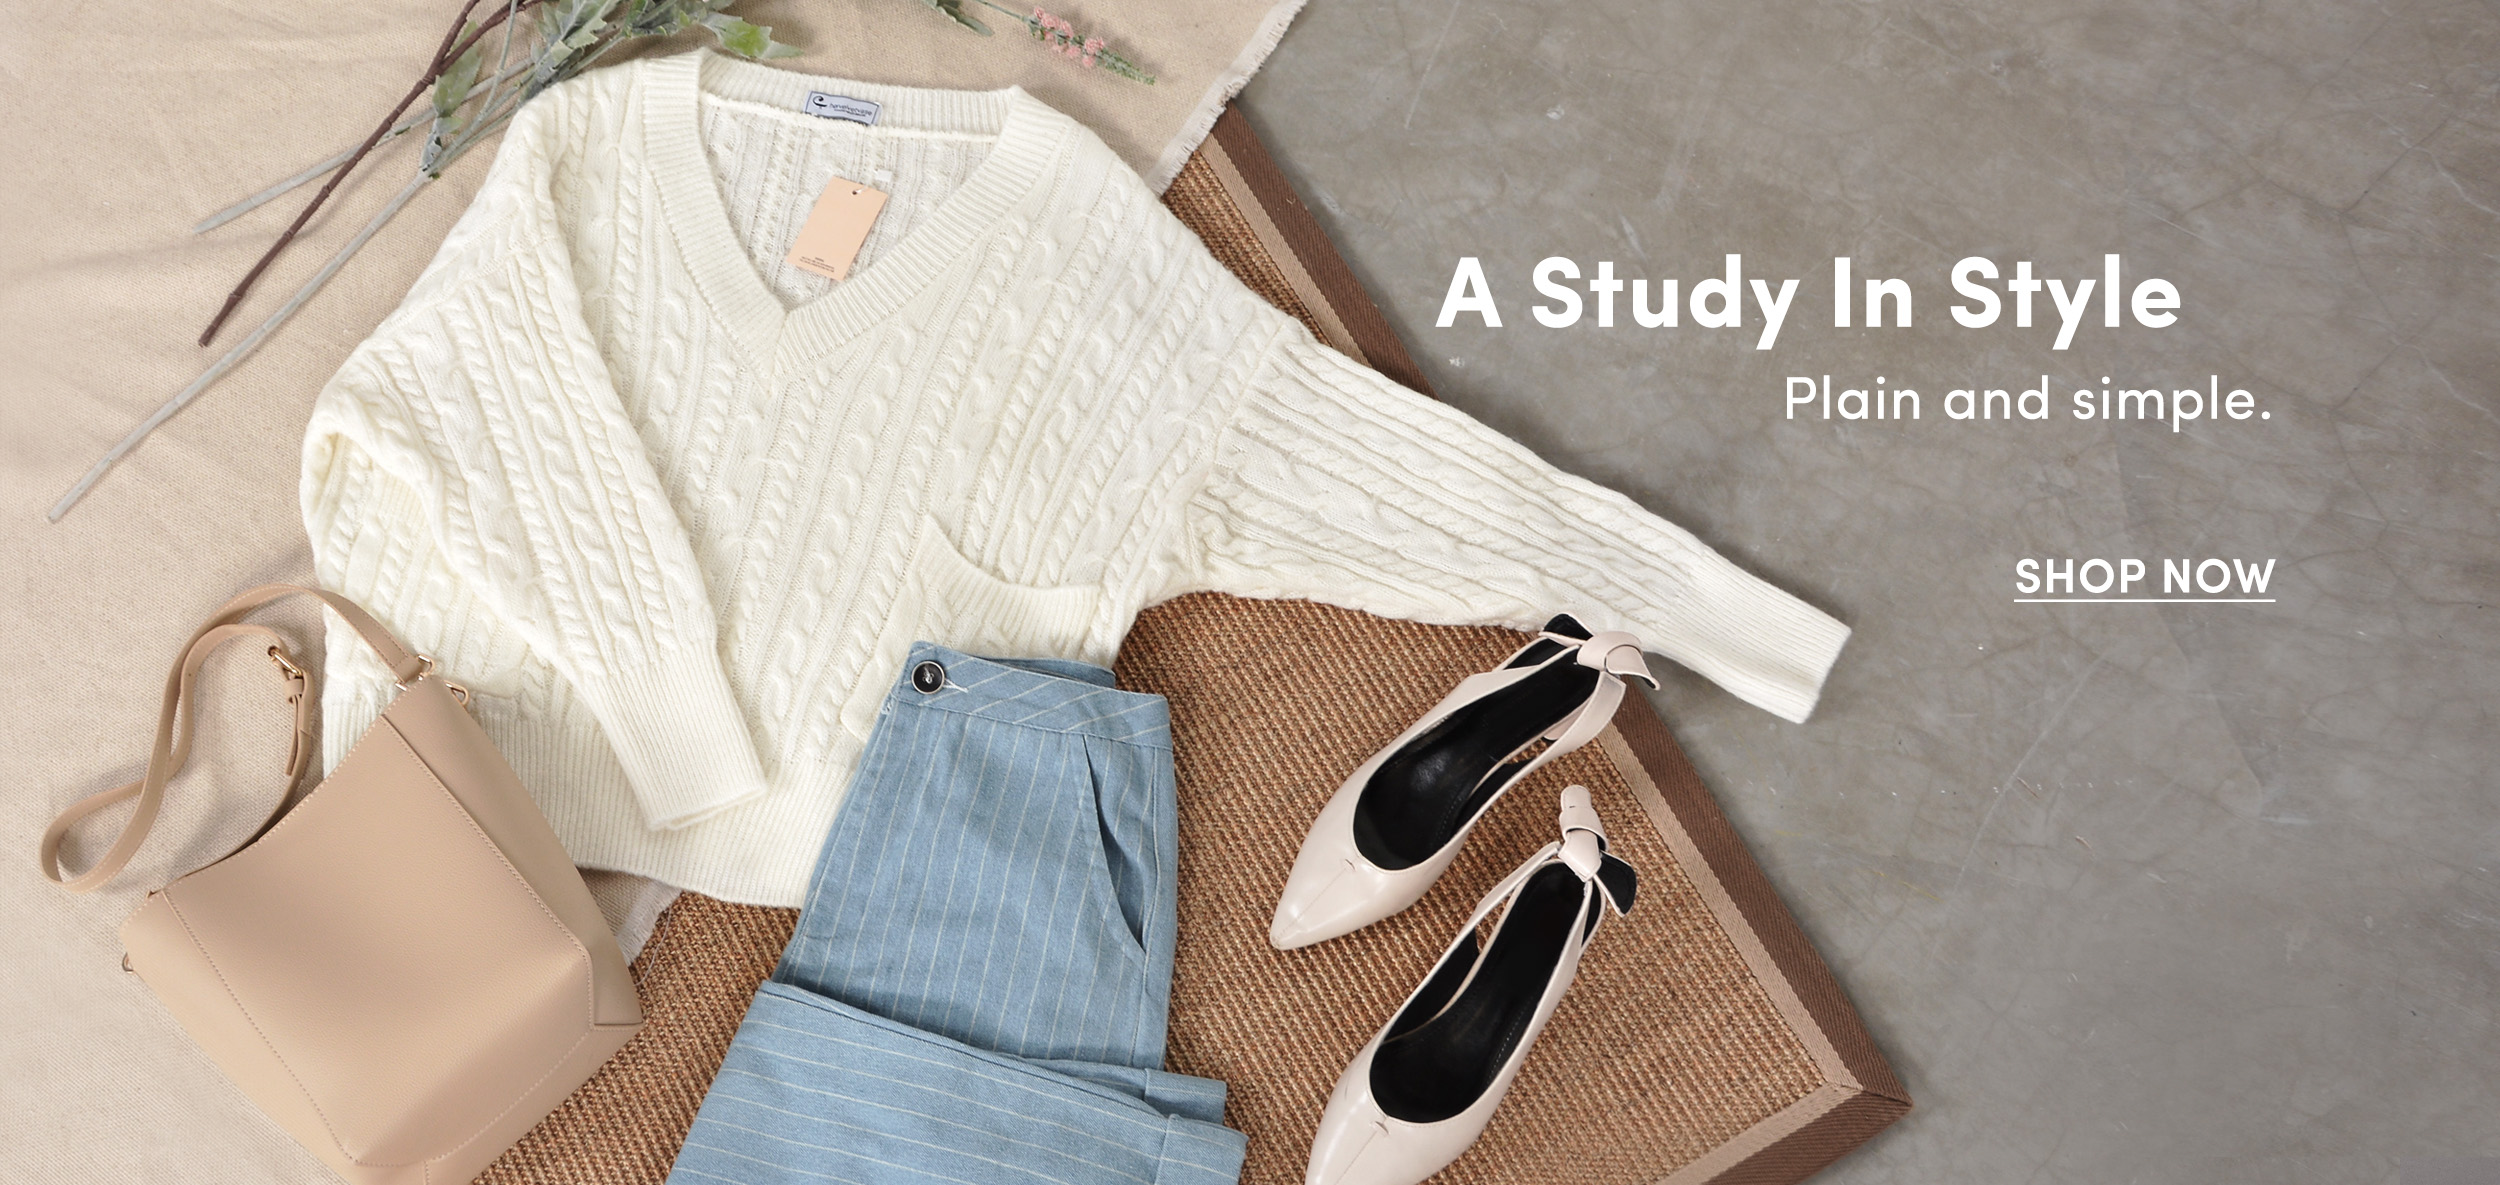 A Study in Style